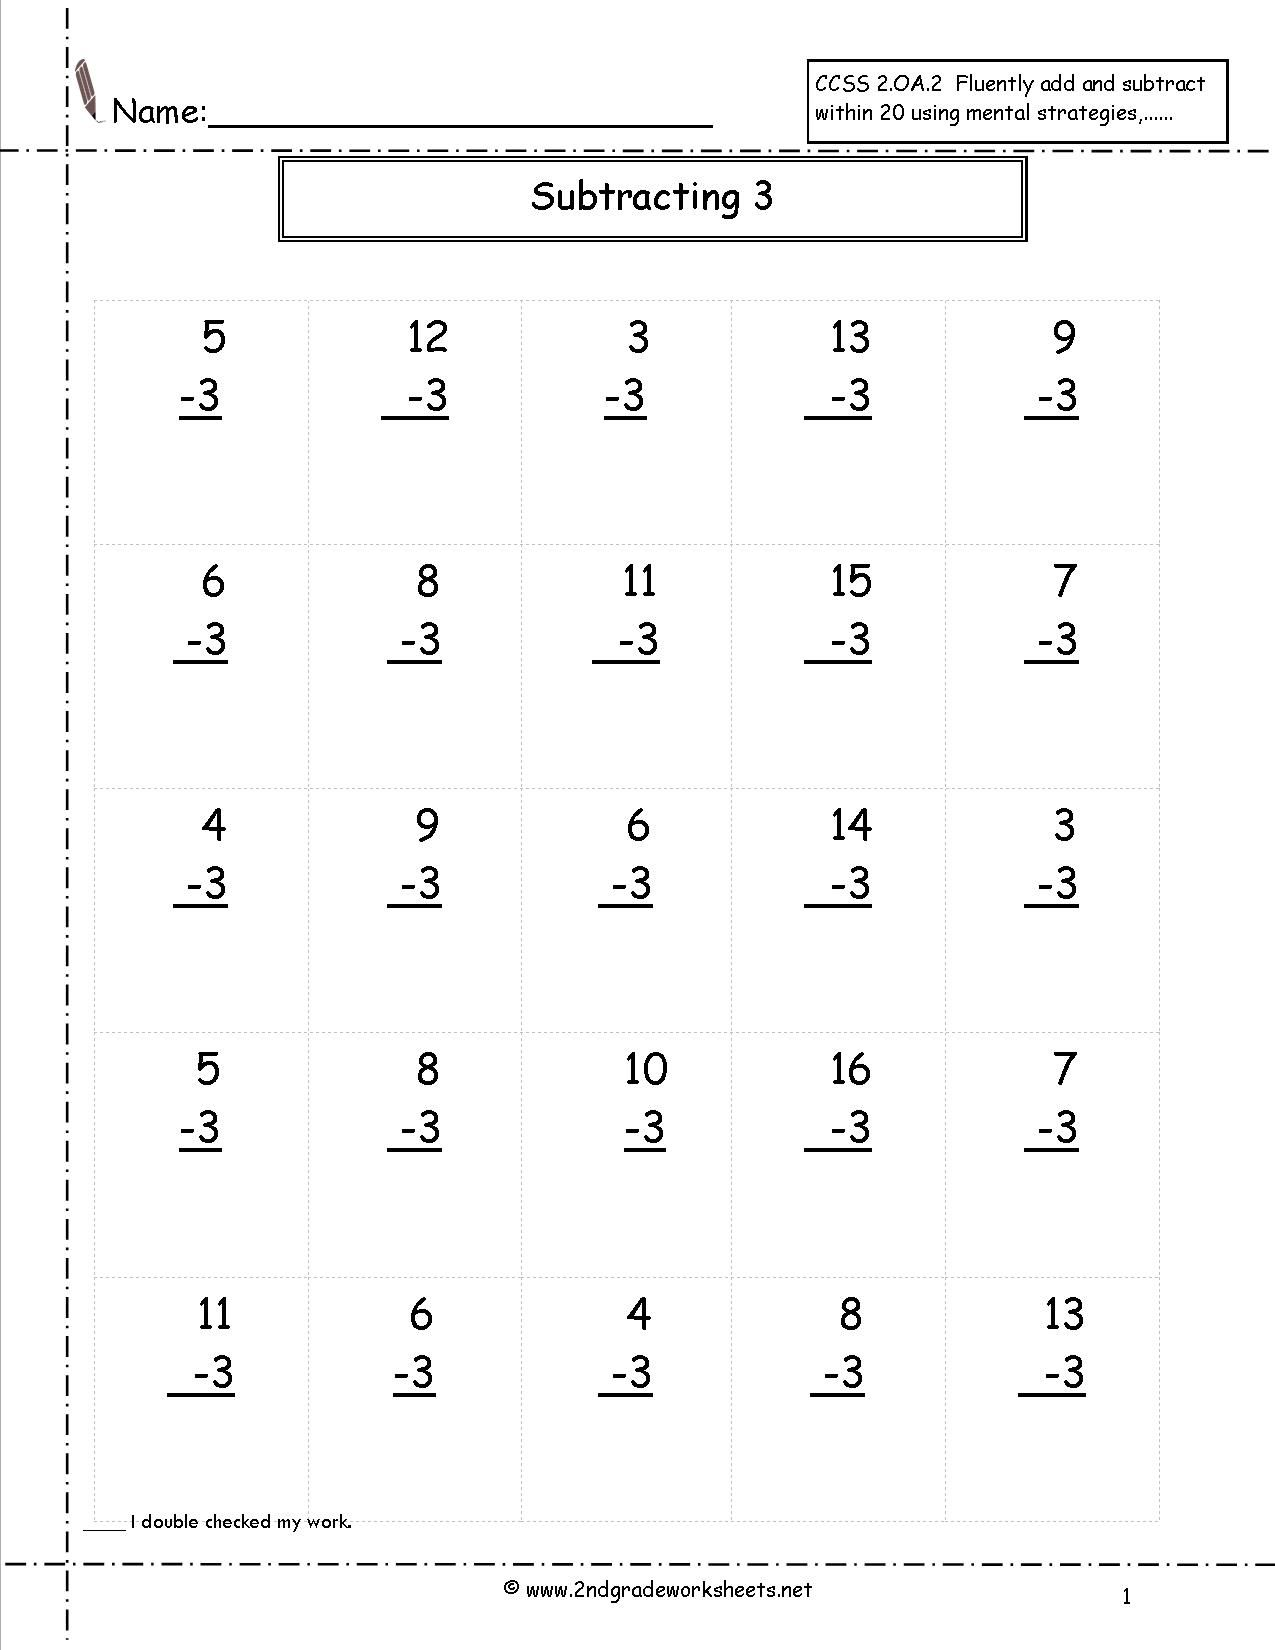 Single Digit Subtraction Fluency Worksheets   Free math worksheets [ 1650 x 1275 Pixel ]